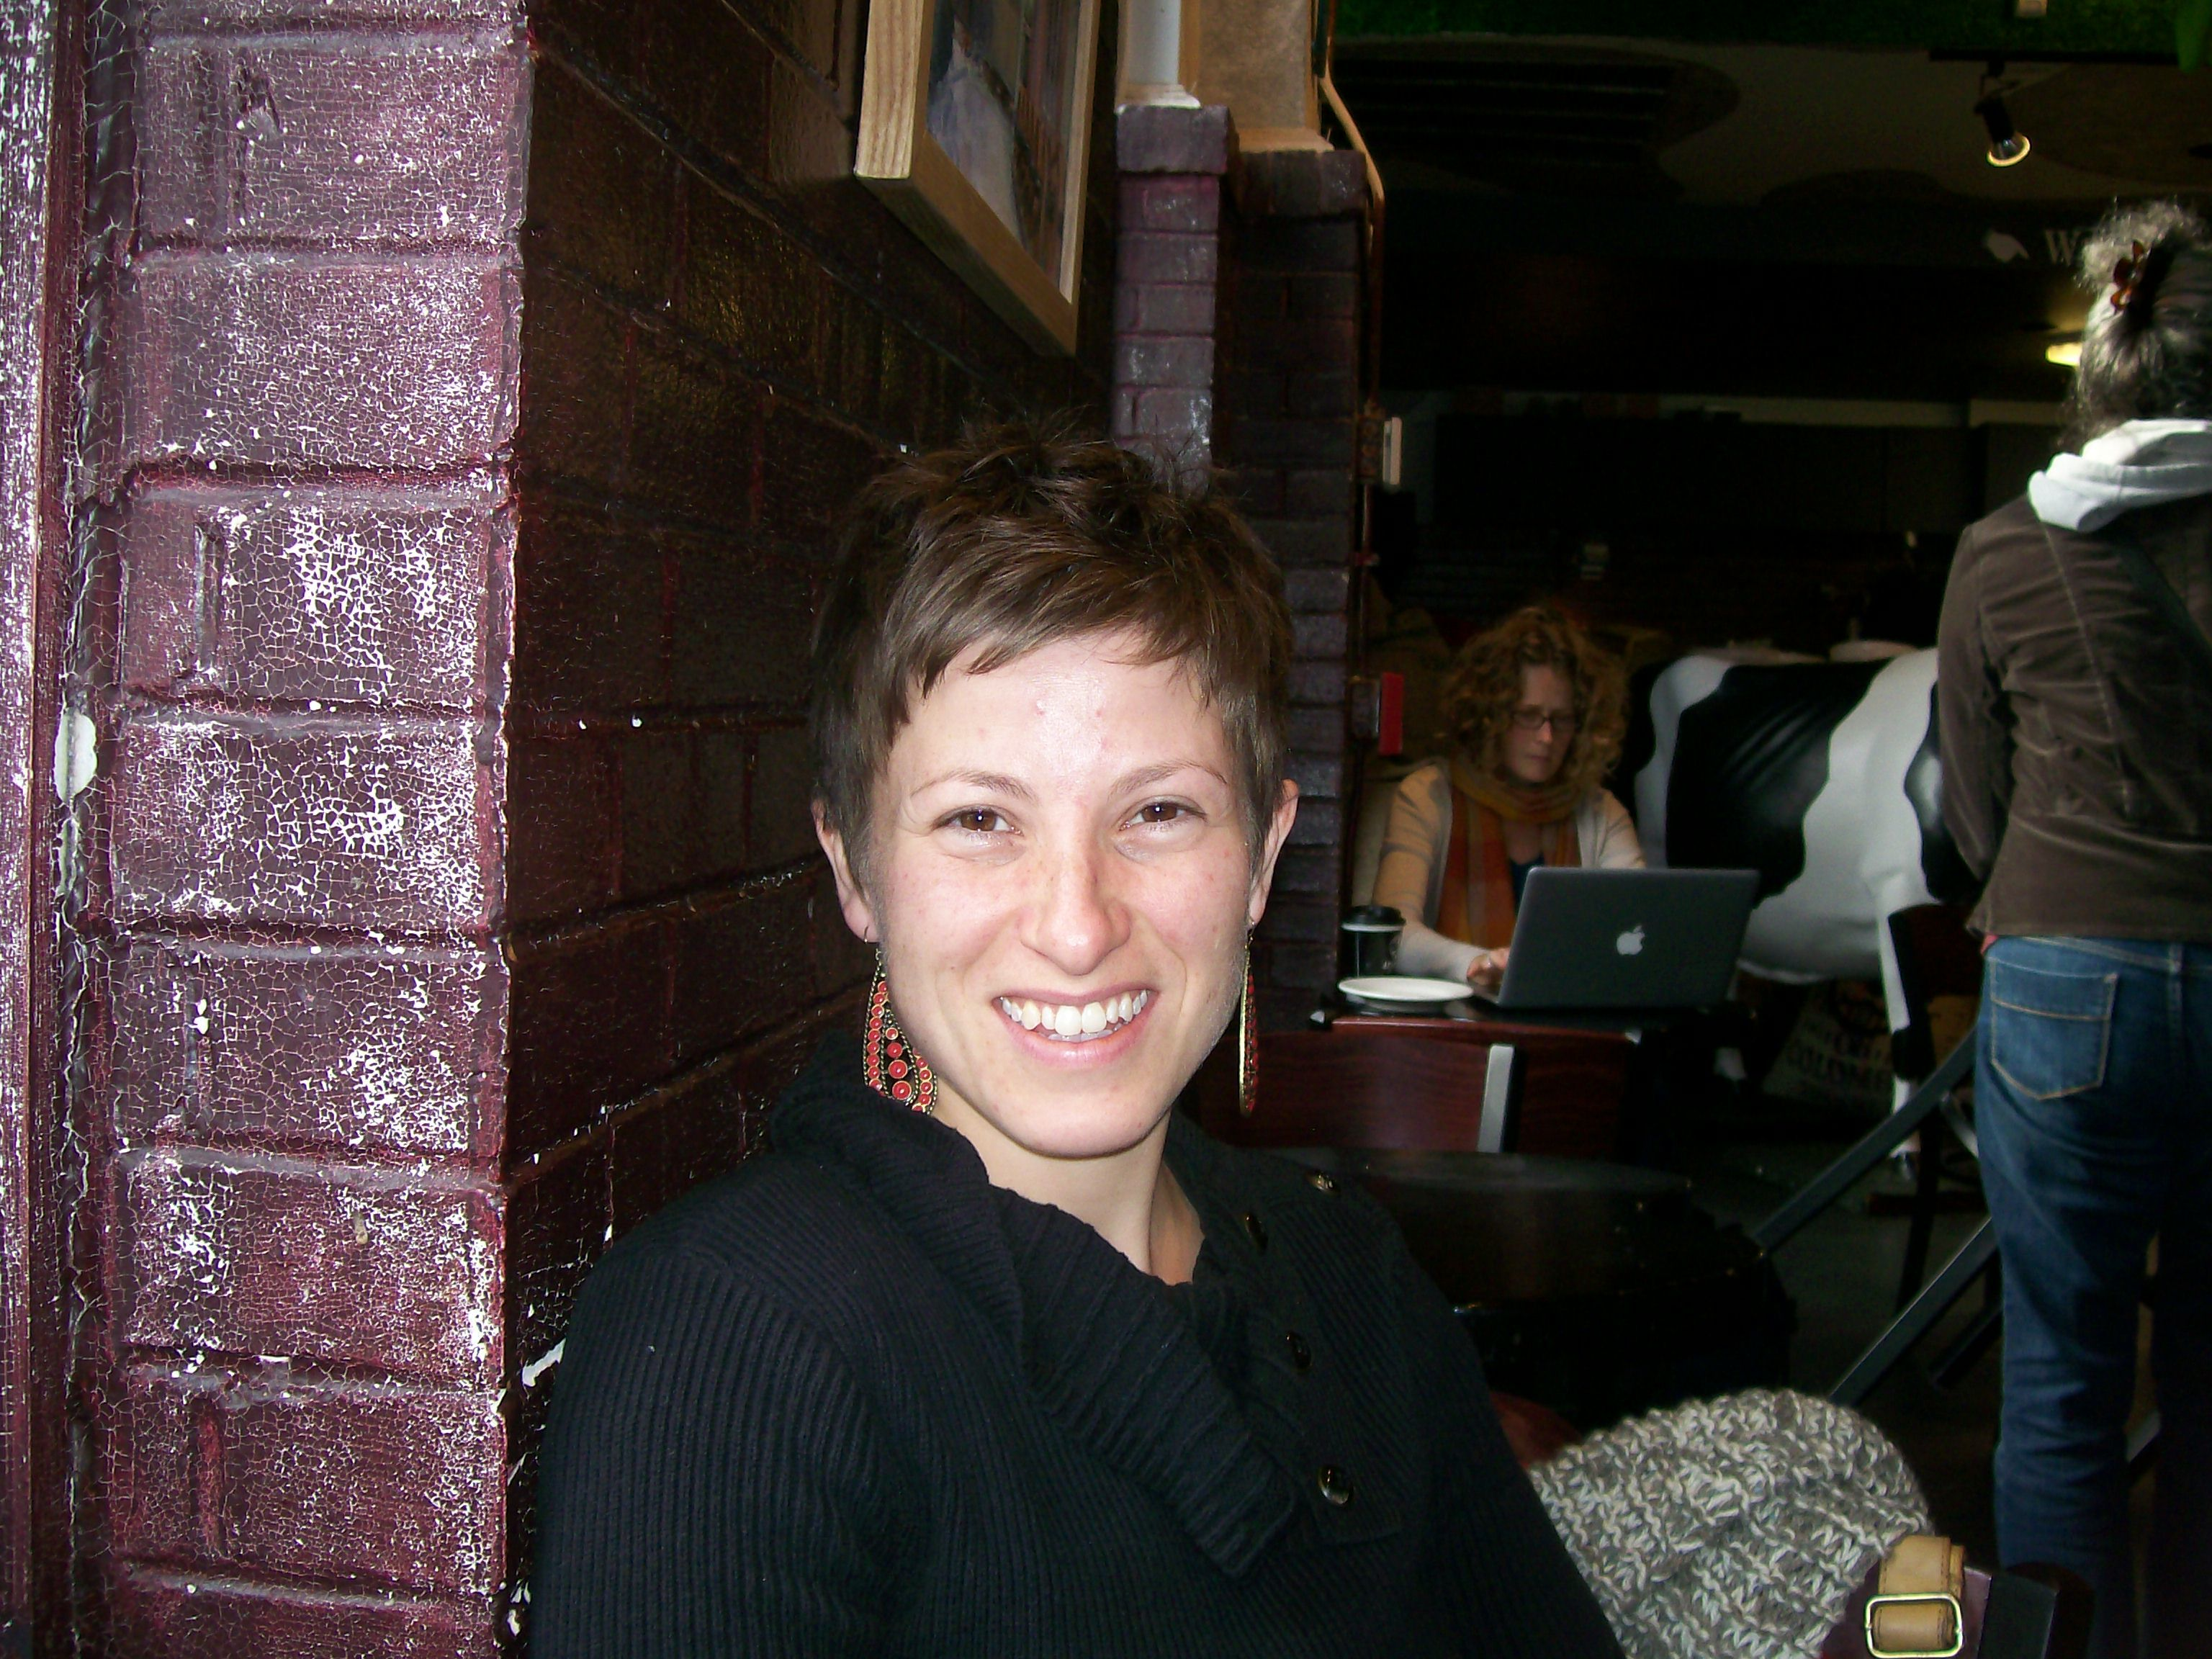 Jessica Taubner, Chief-of-Staff for Councillor Ayanna Pressley